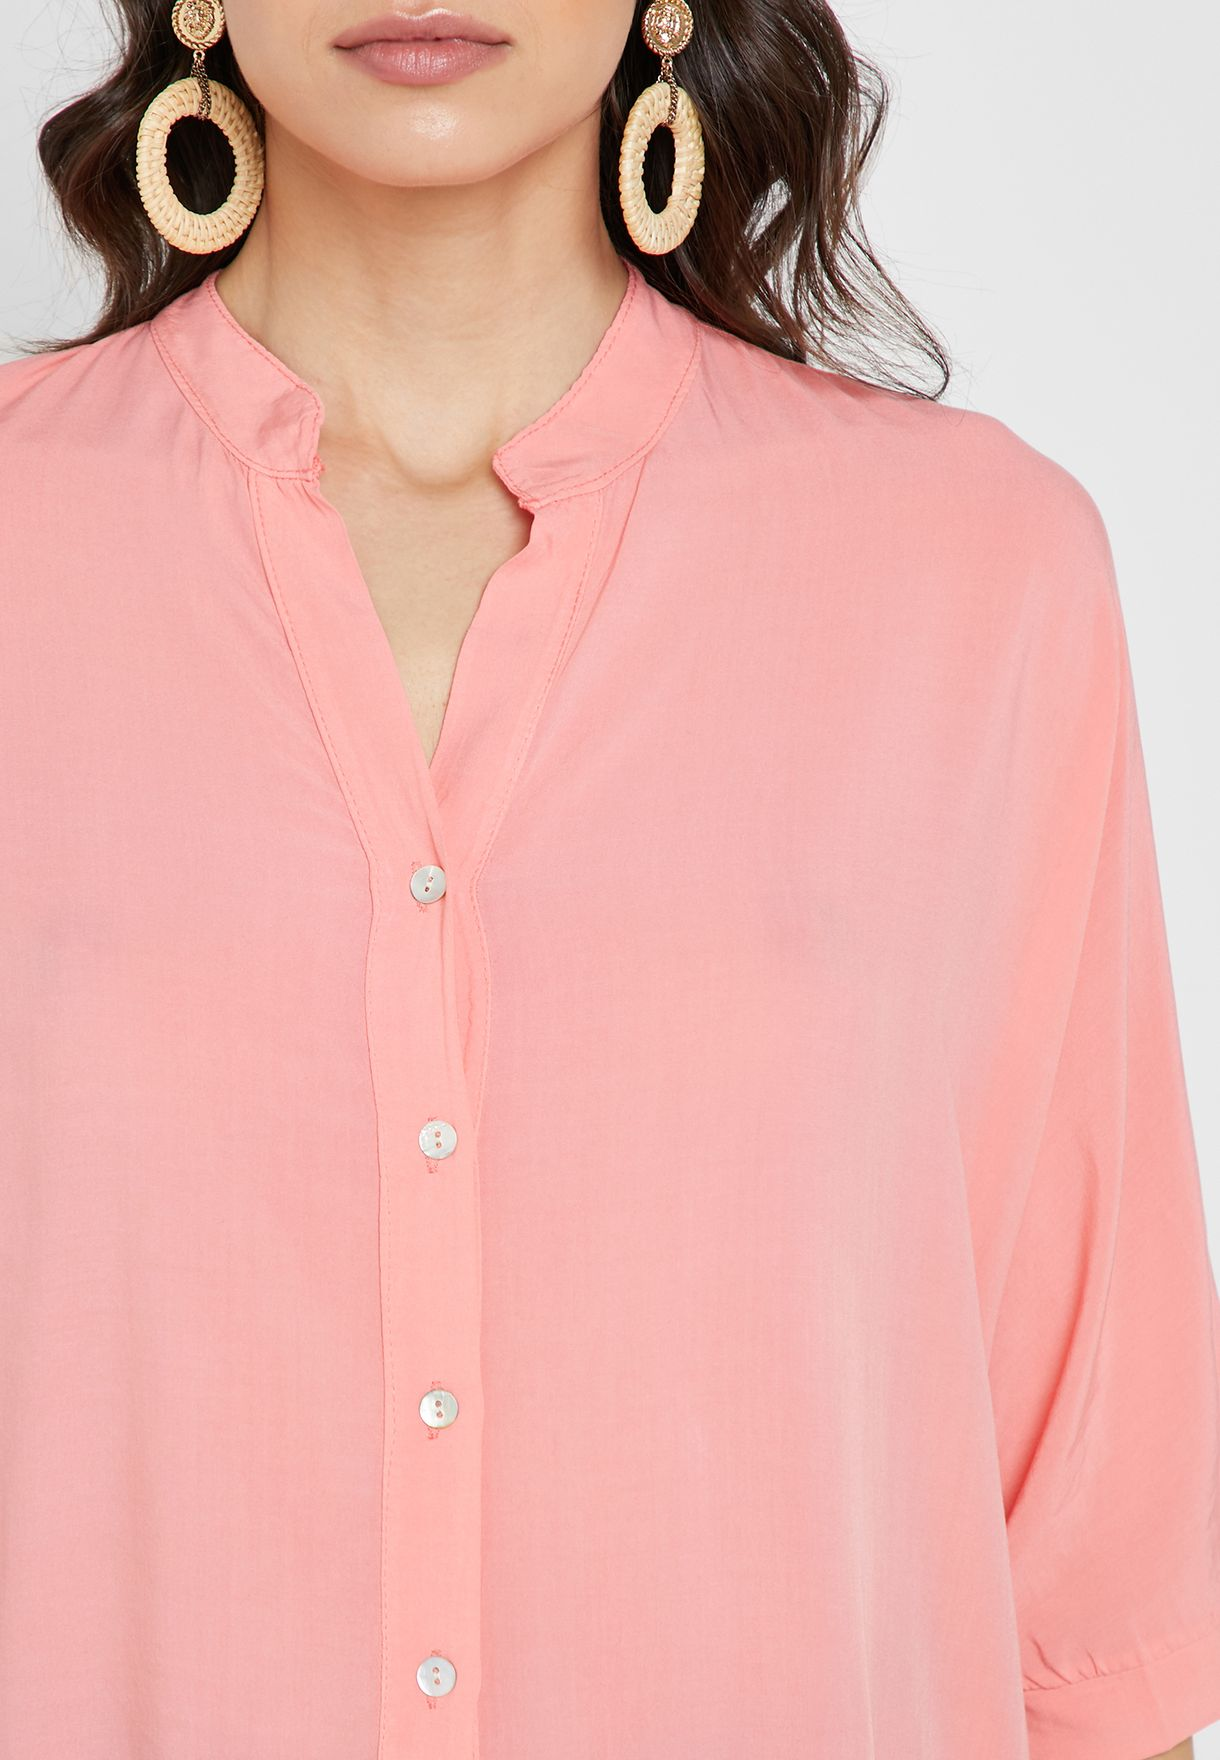 Oversized Placket Shirt